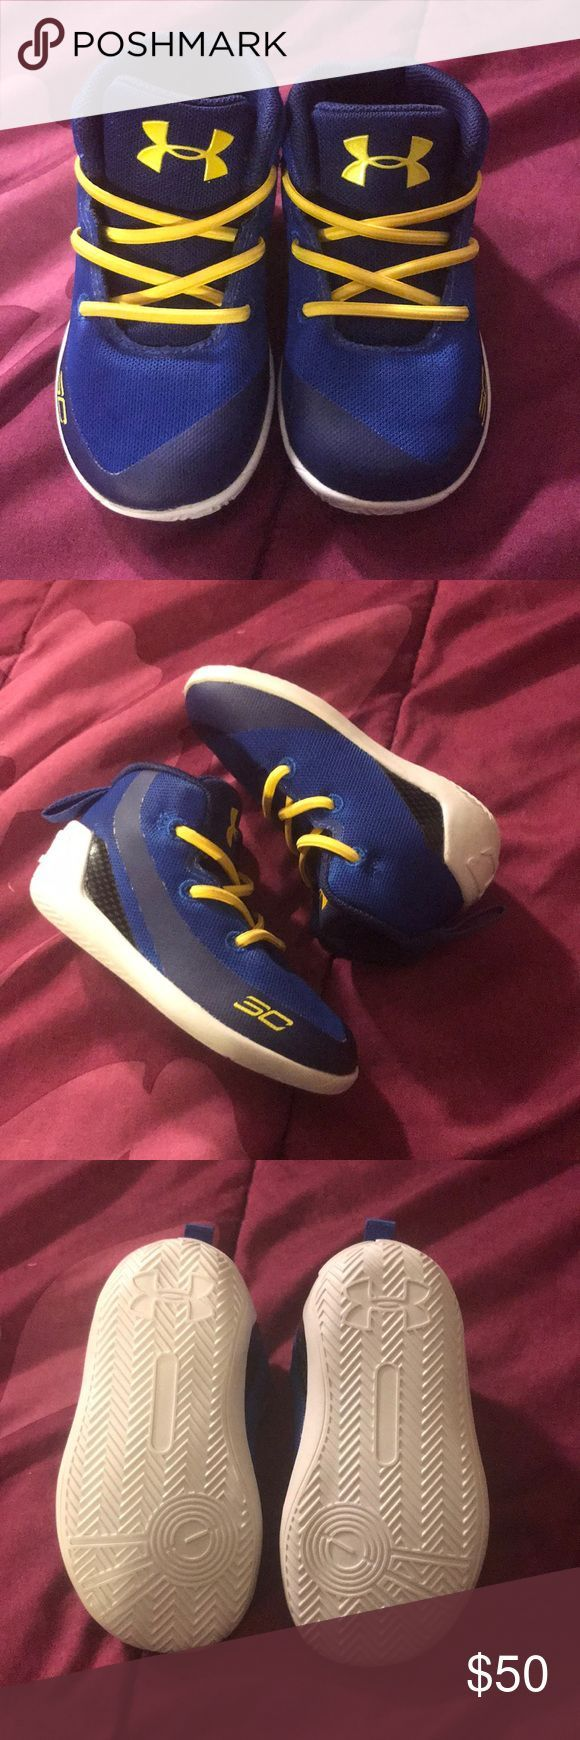 Steph Curry's Steph Curry infant shoes